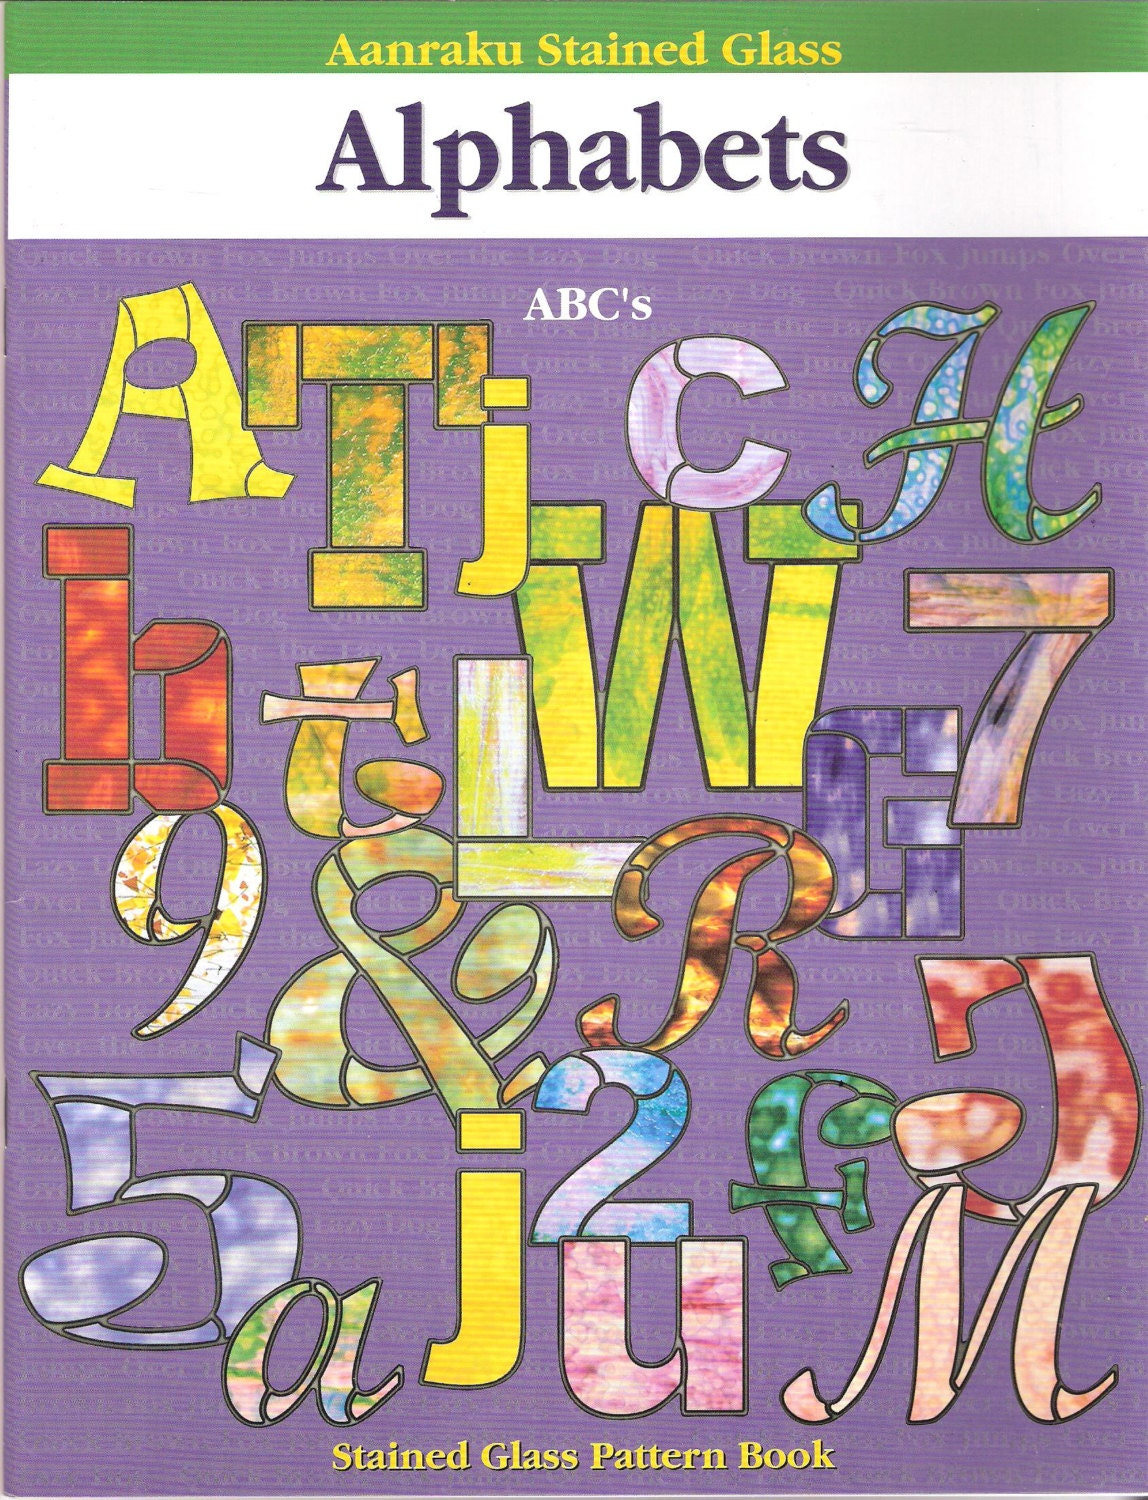 Alphabets By Aanraku Stained Glass Pattern Book